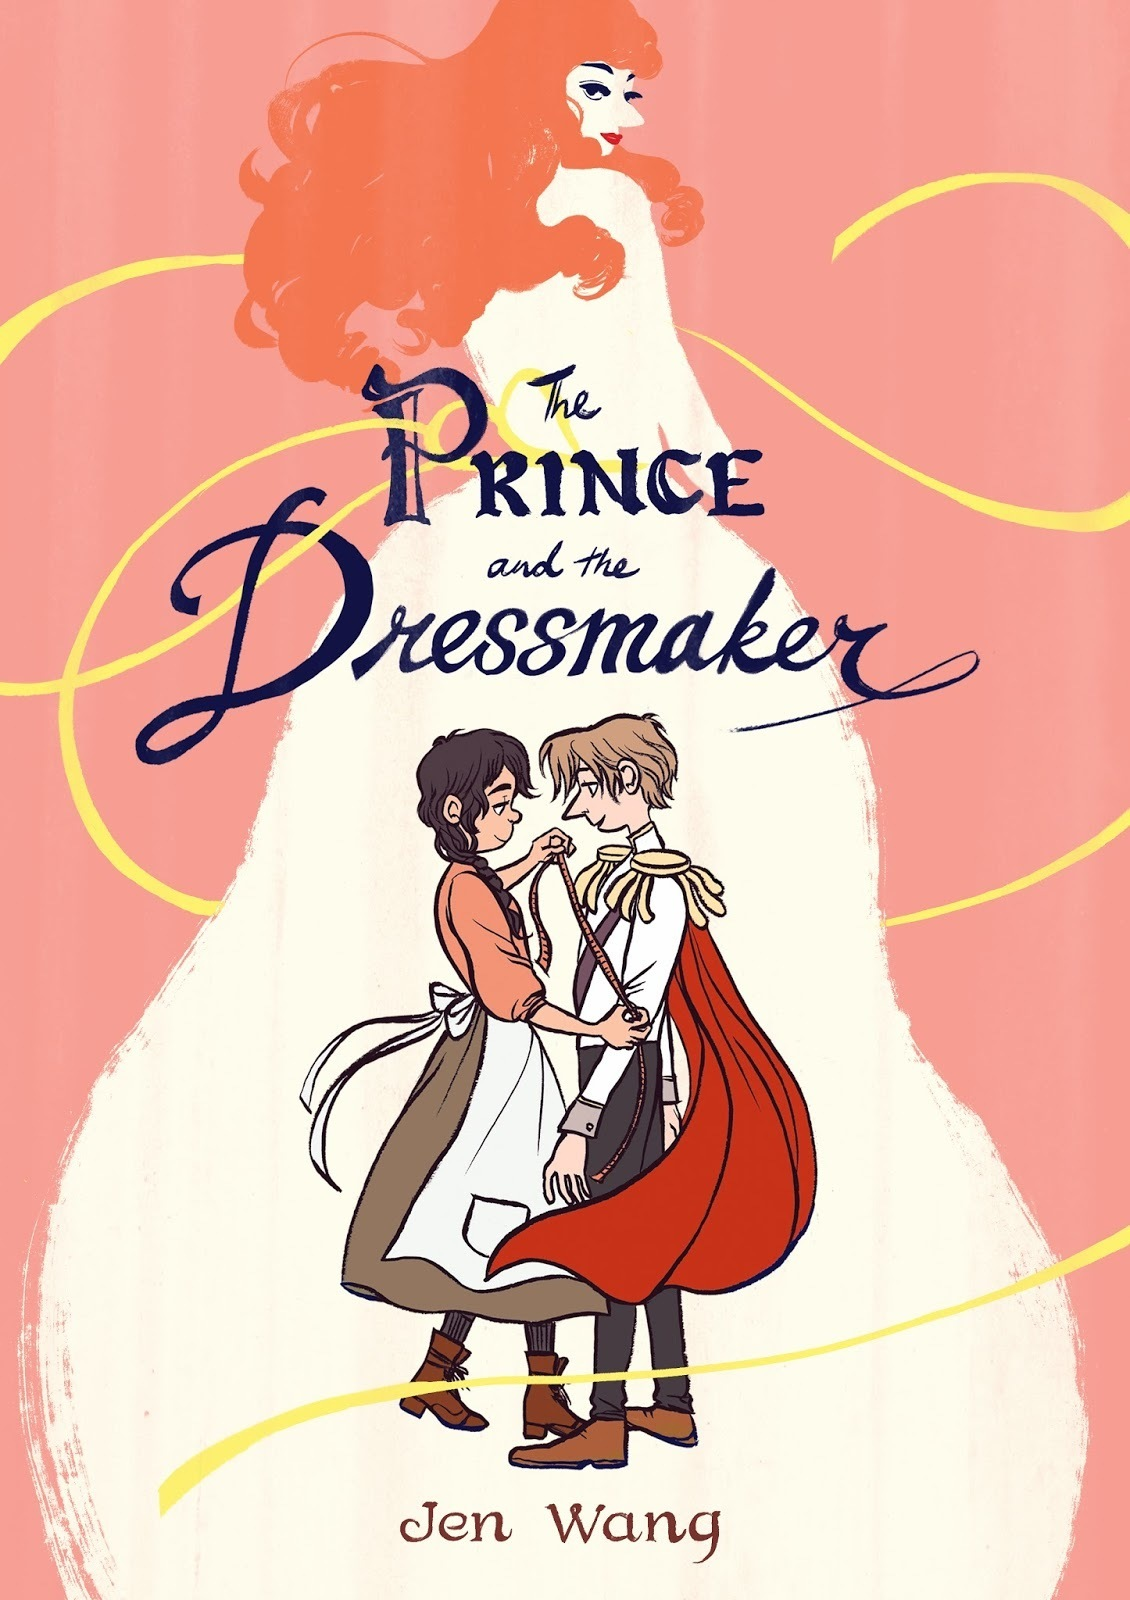 BWW Interview: Jen Wang, Author of THE PRINCE AND THE DRESSMAKER